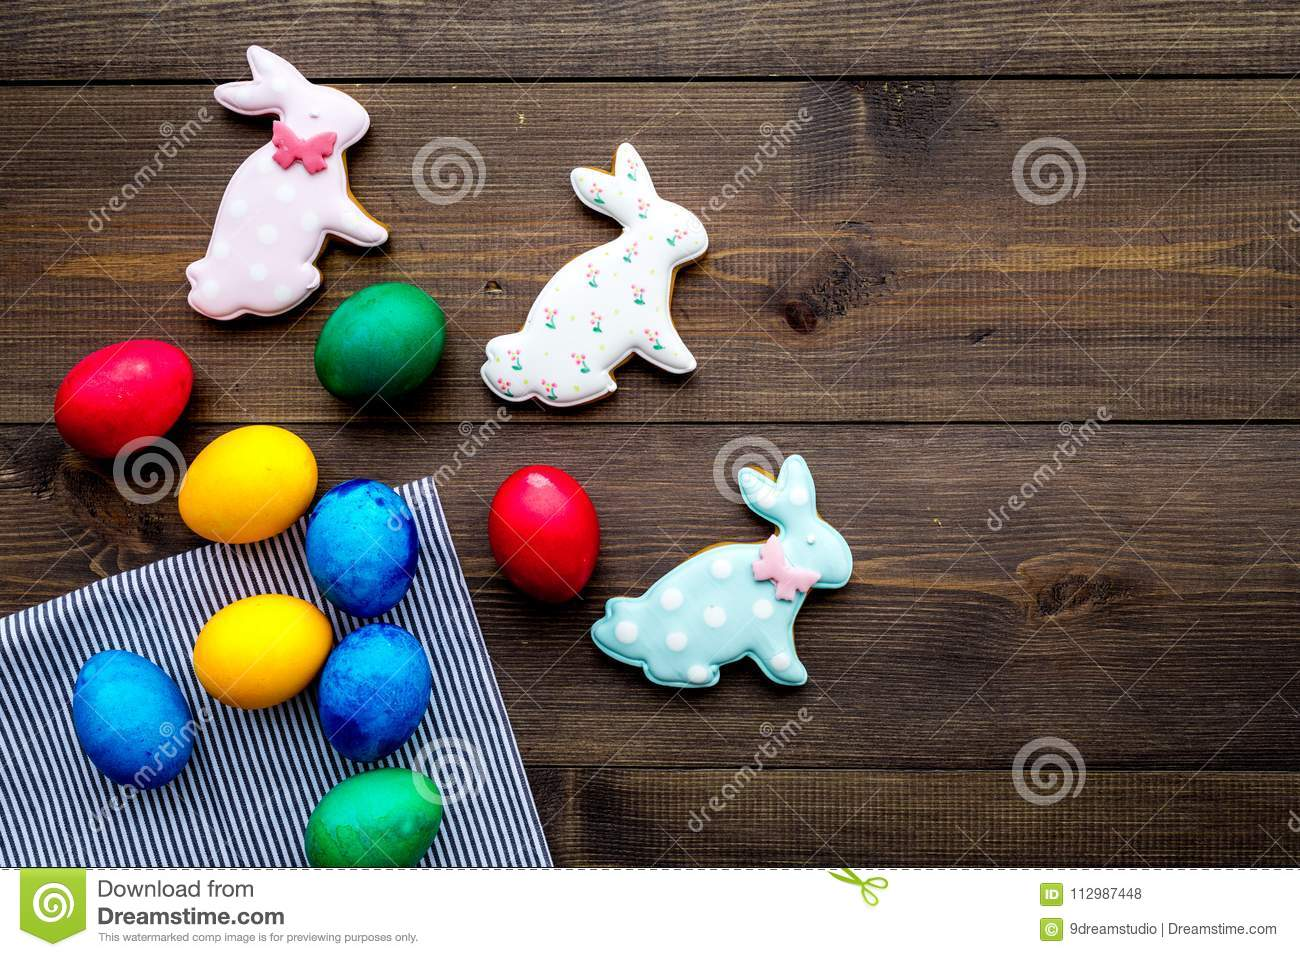 Easter celebration with colorful eggs and gingerbread in shape of easter bunny and carrot. Wooden background top view